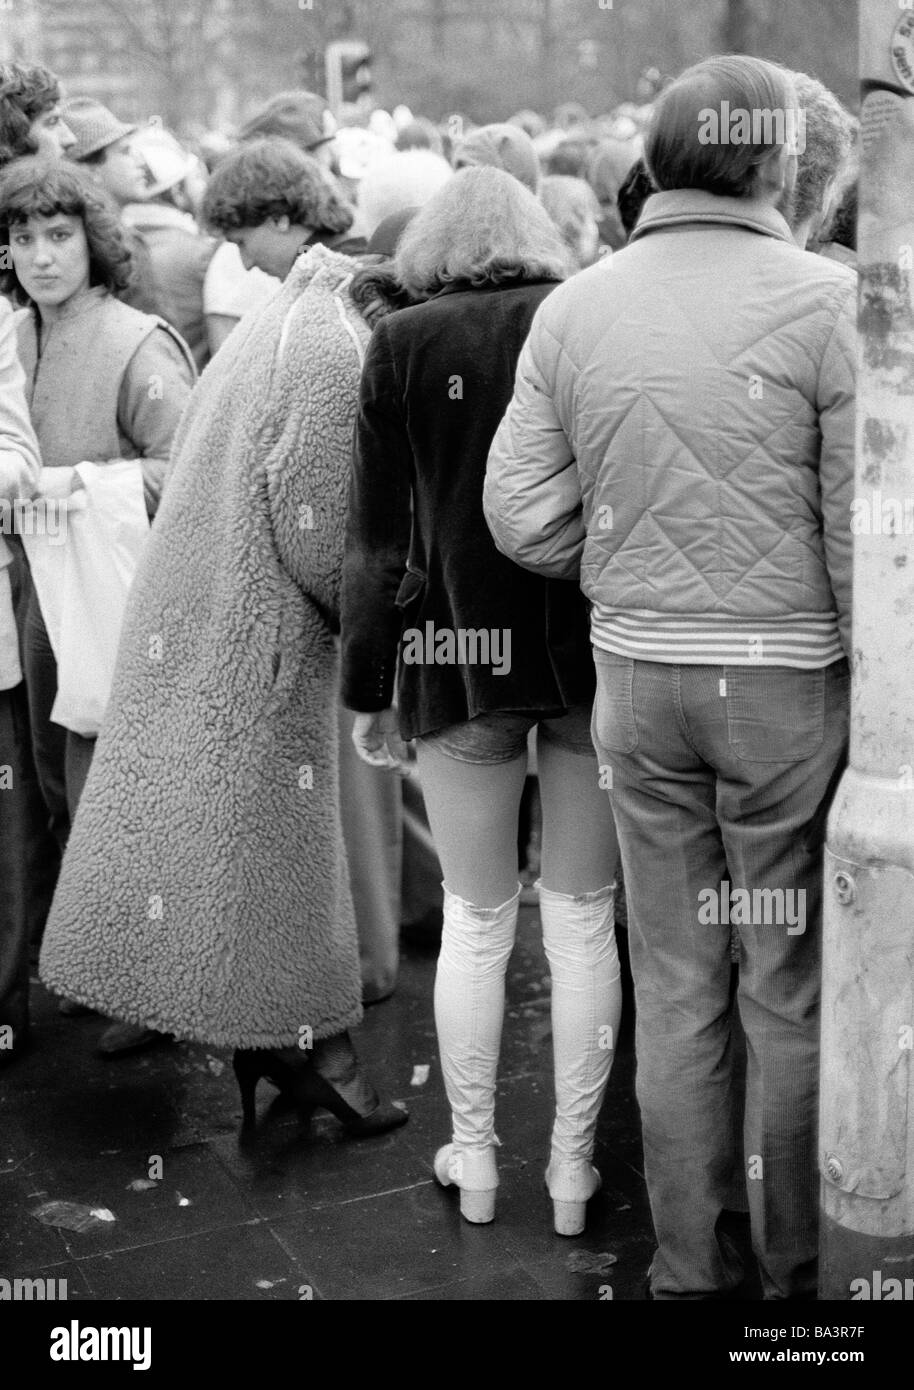 Eighties, black and white photo, people, Rhenish carnival, Rose Monday parade 1981, visitors watching the parade, - Stock Image